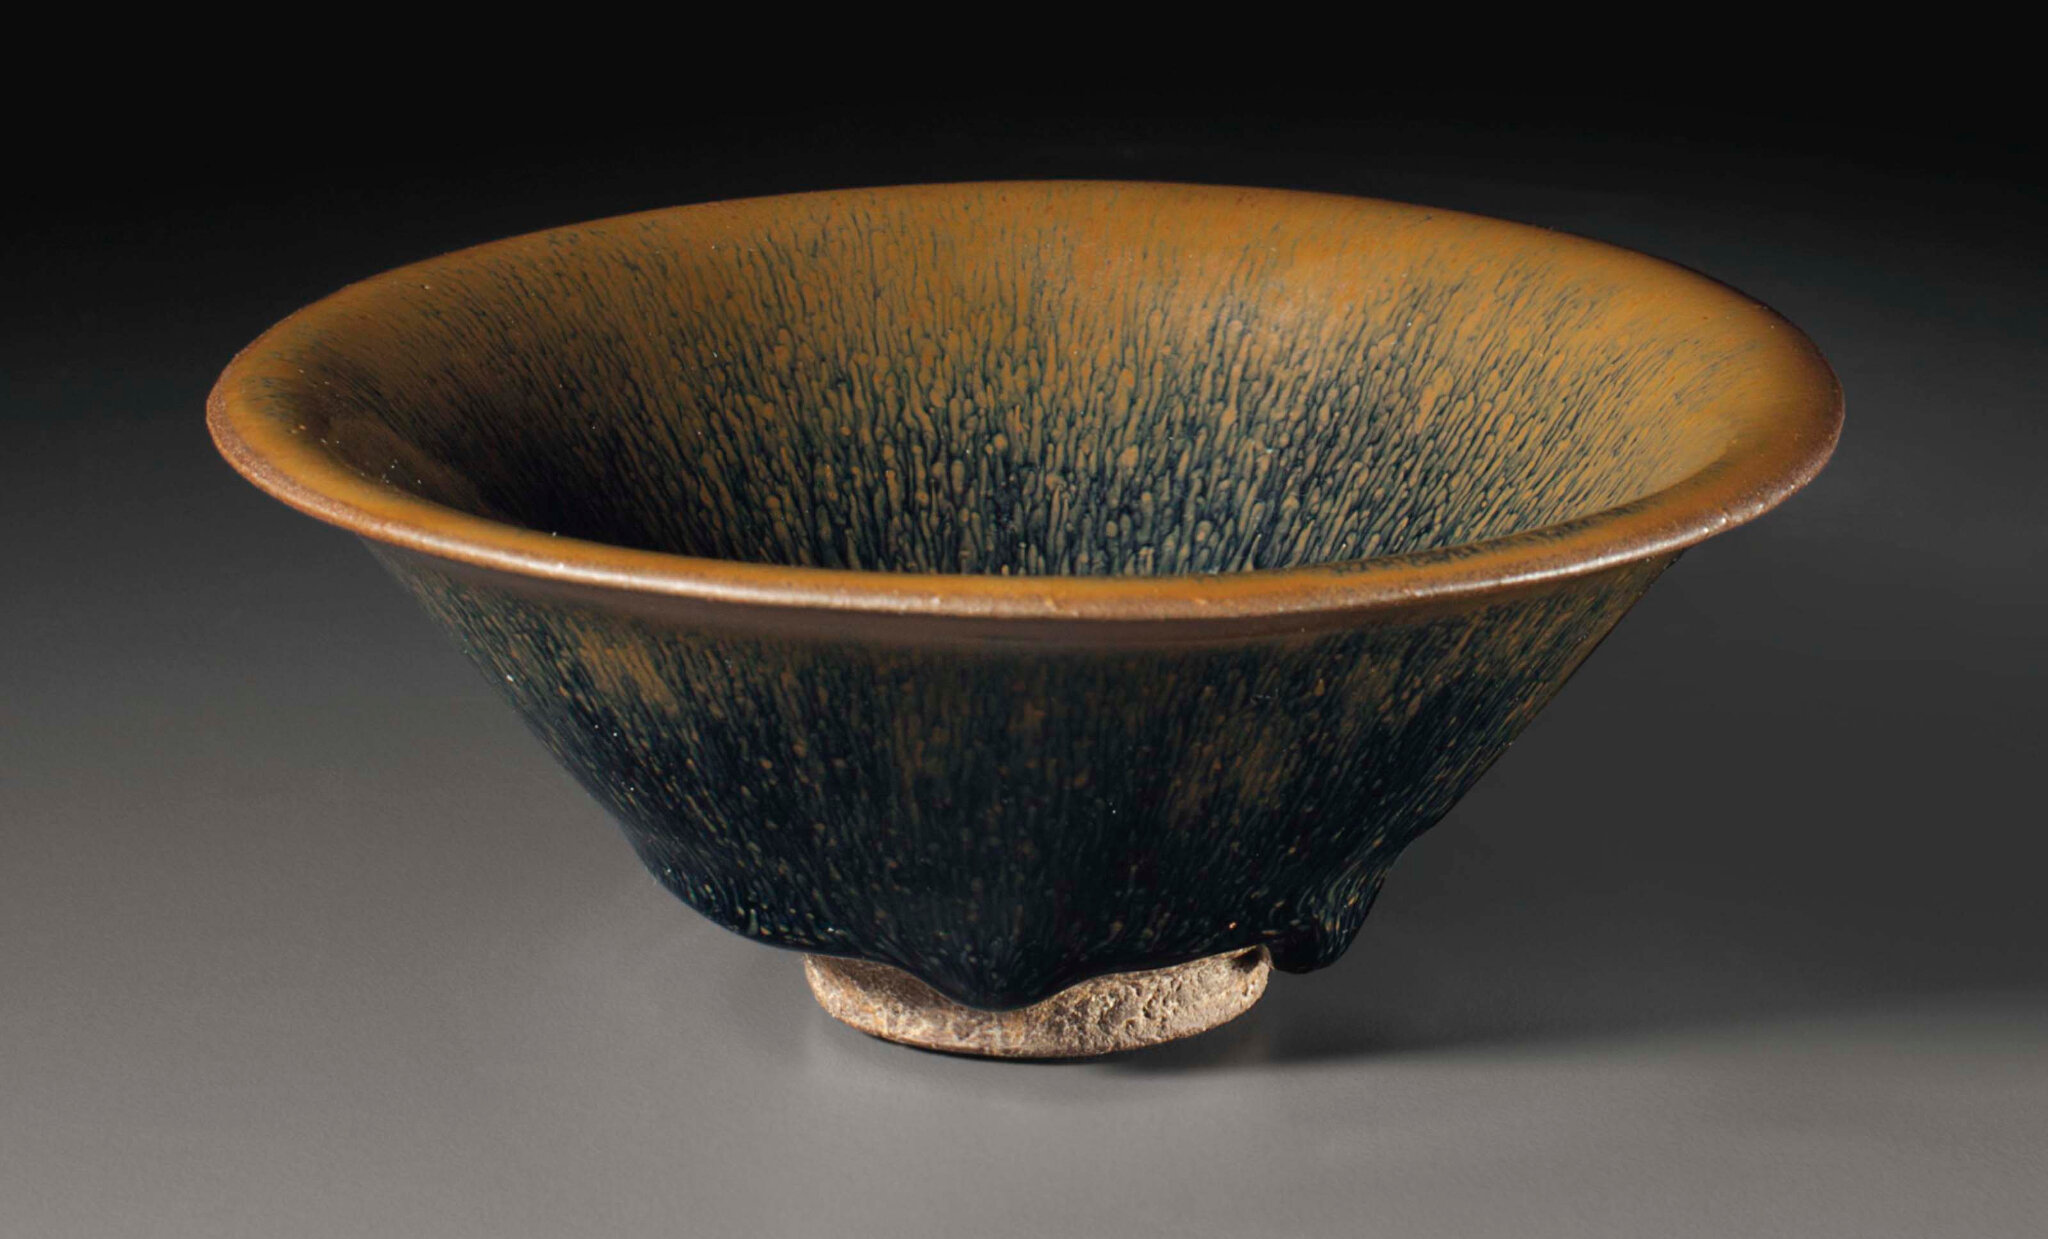 A Jianyao 'hare's fur' tea bowl, Song Dynasty, 12th-13th century